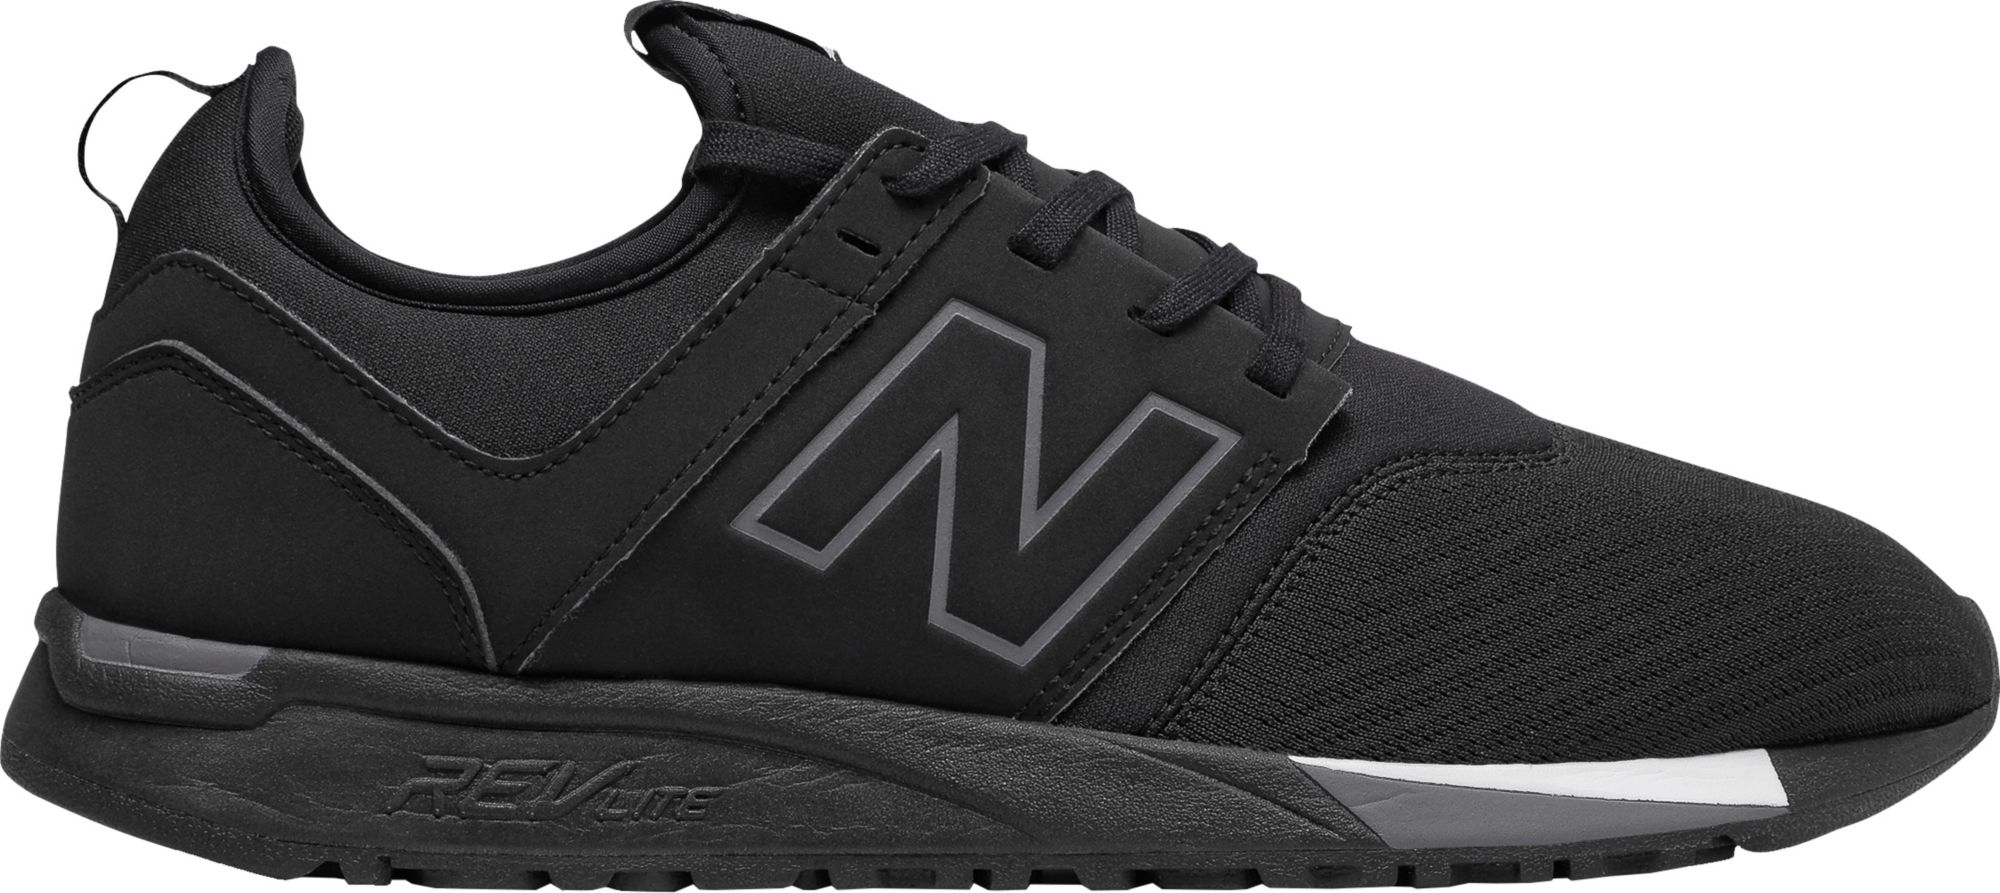 new balance men's 247 shoes